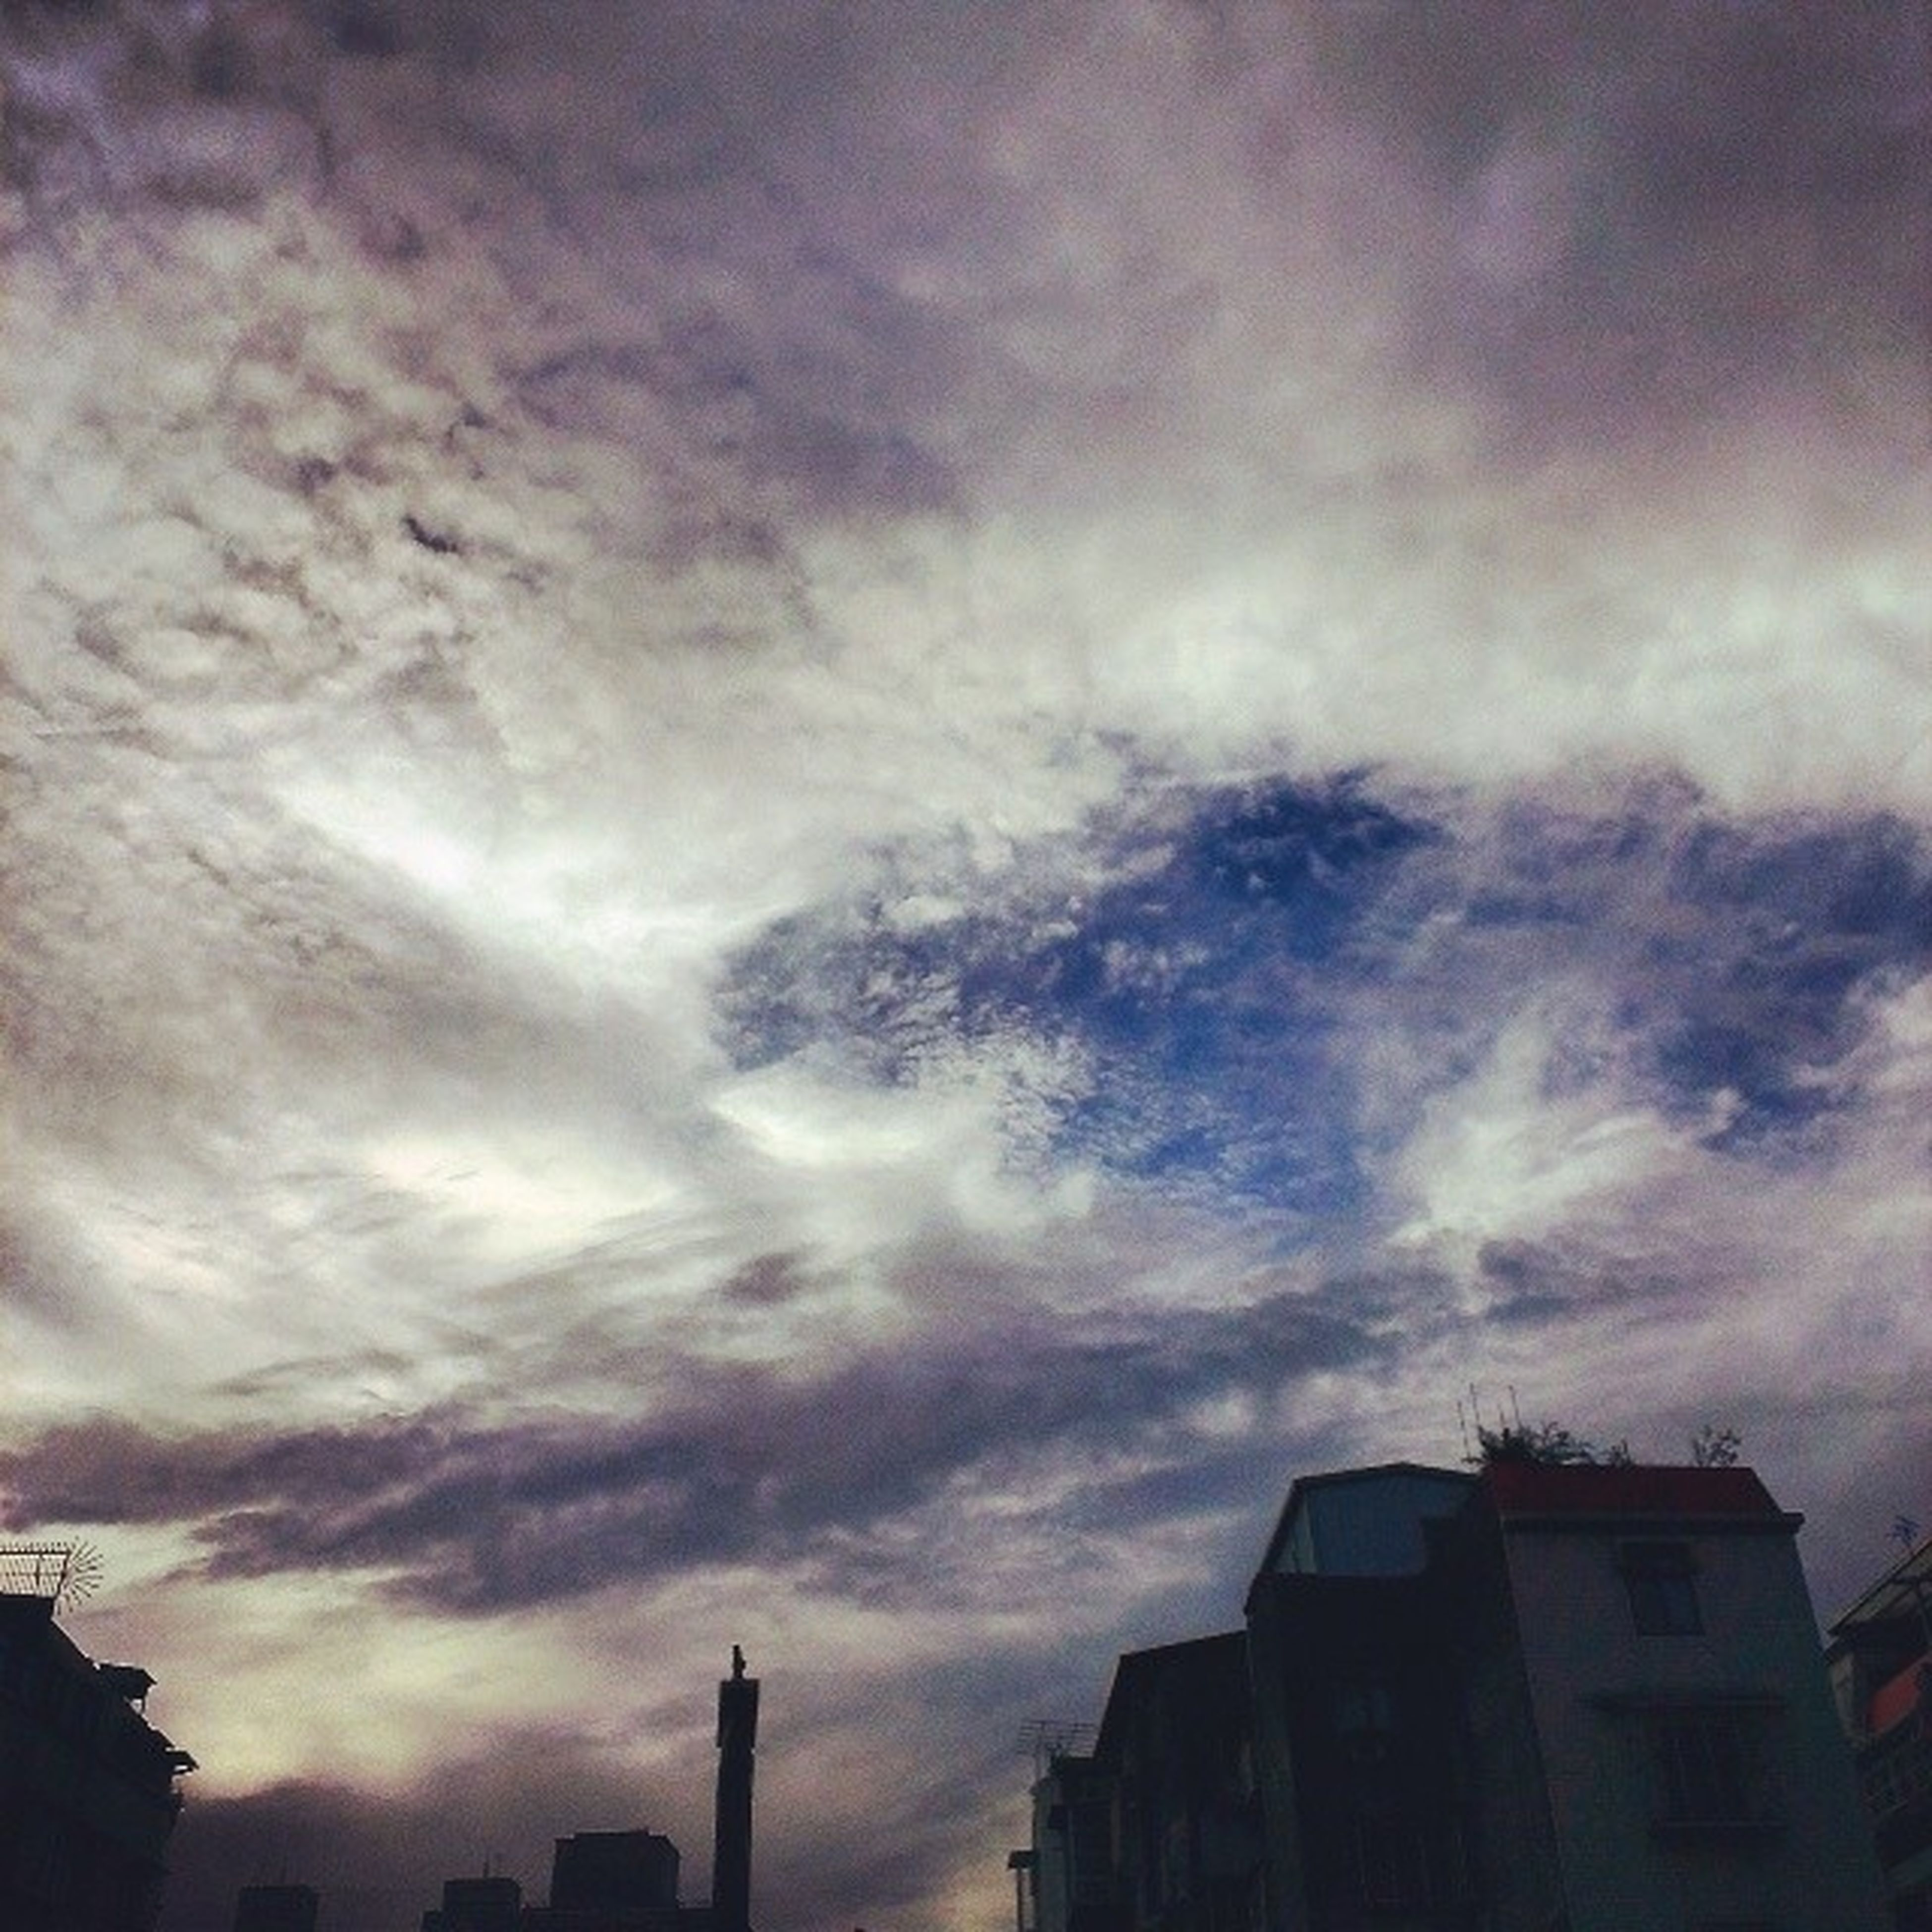 building exterior, architecture, built structure, sky, cloud - sky, cloudy, low angle view, silhouette, weather, overcast, building, cloud, storm cloud, city, dusk, sunset, residential structure, residential building, outdoors, dramatic sky